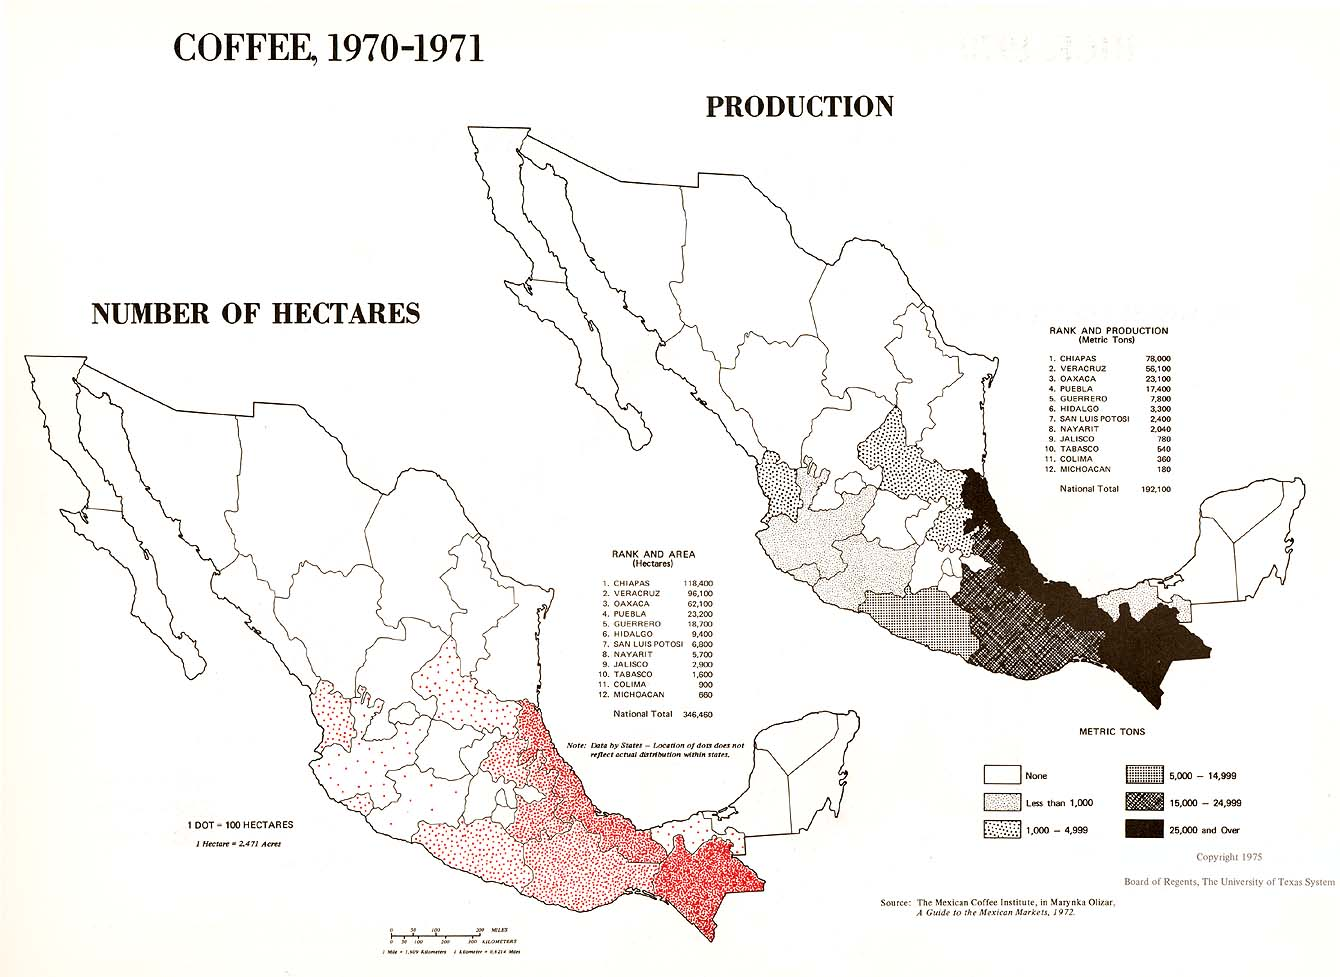 Coffee Production in Mexico 1970 - 1971